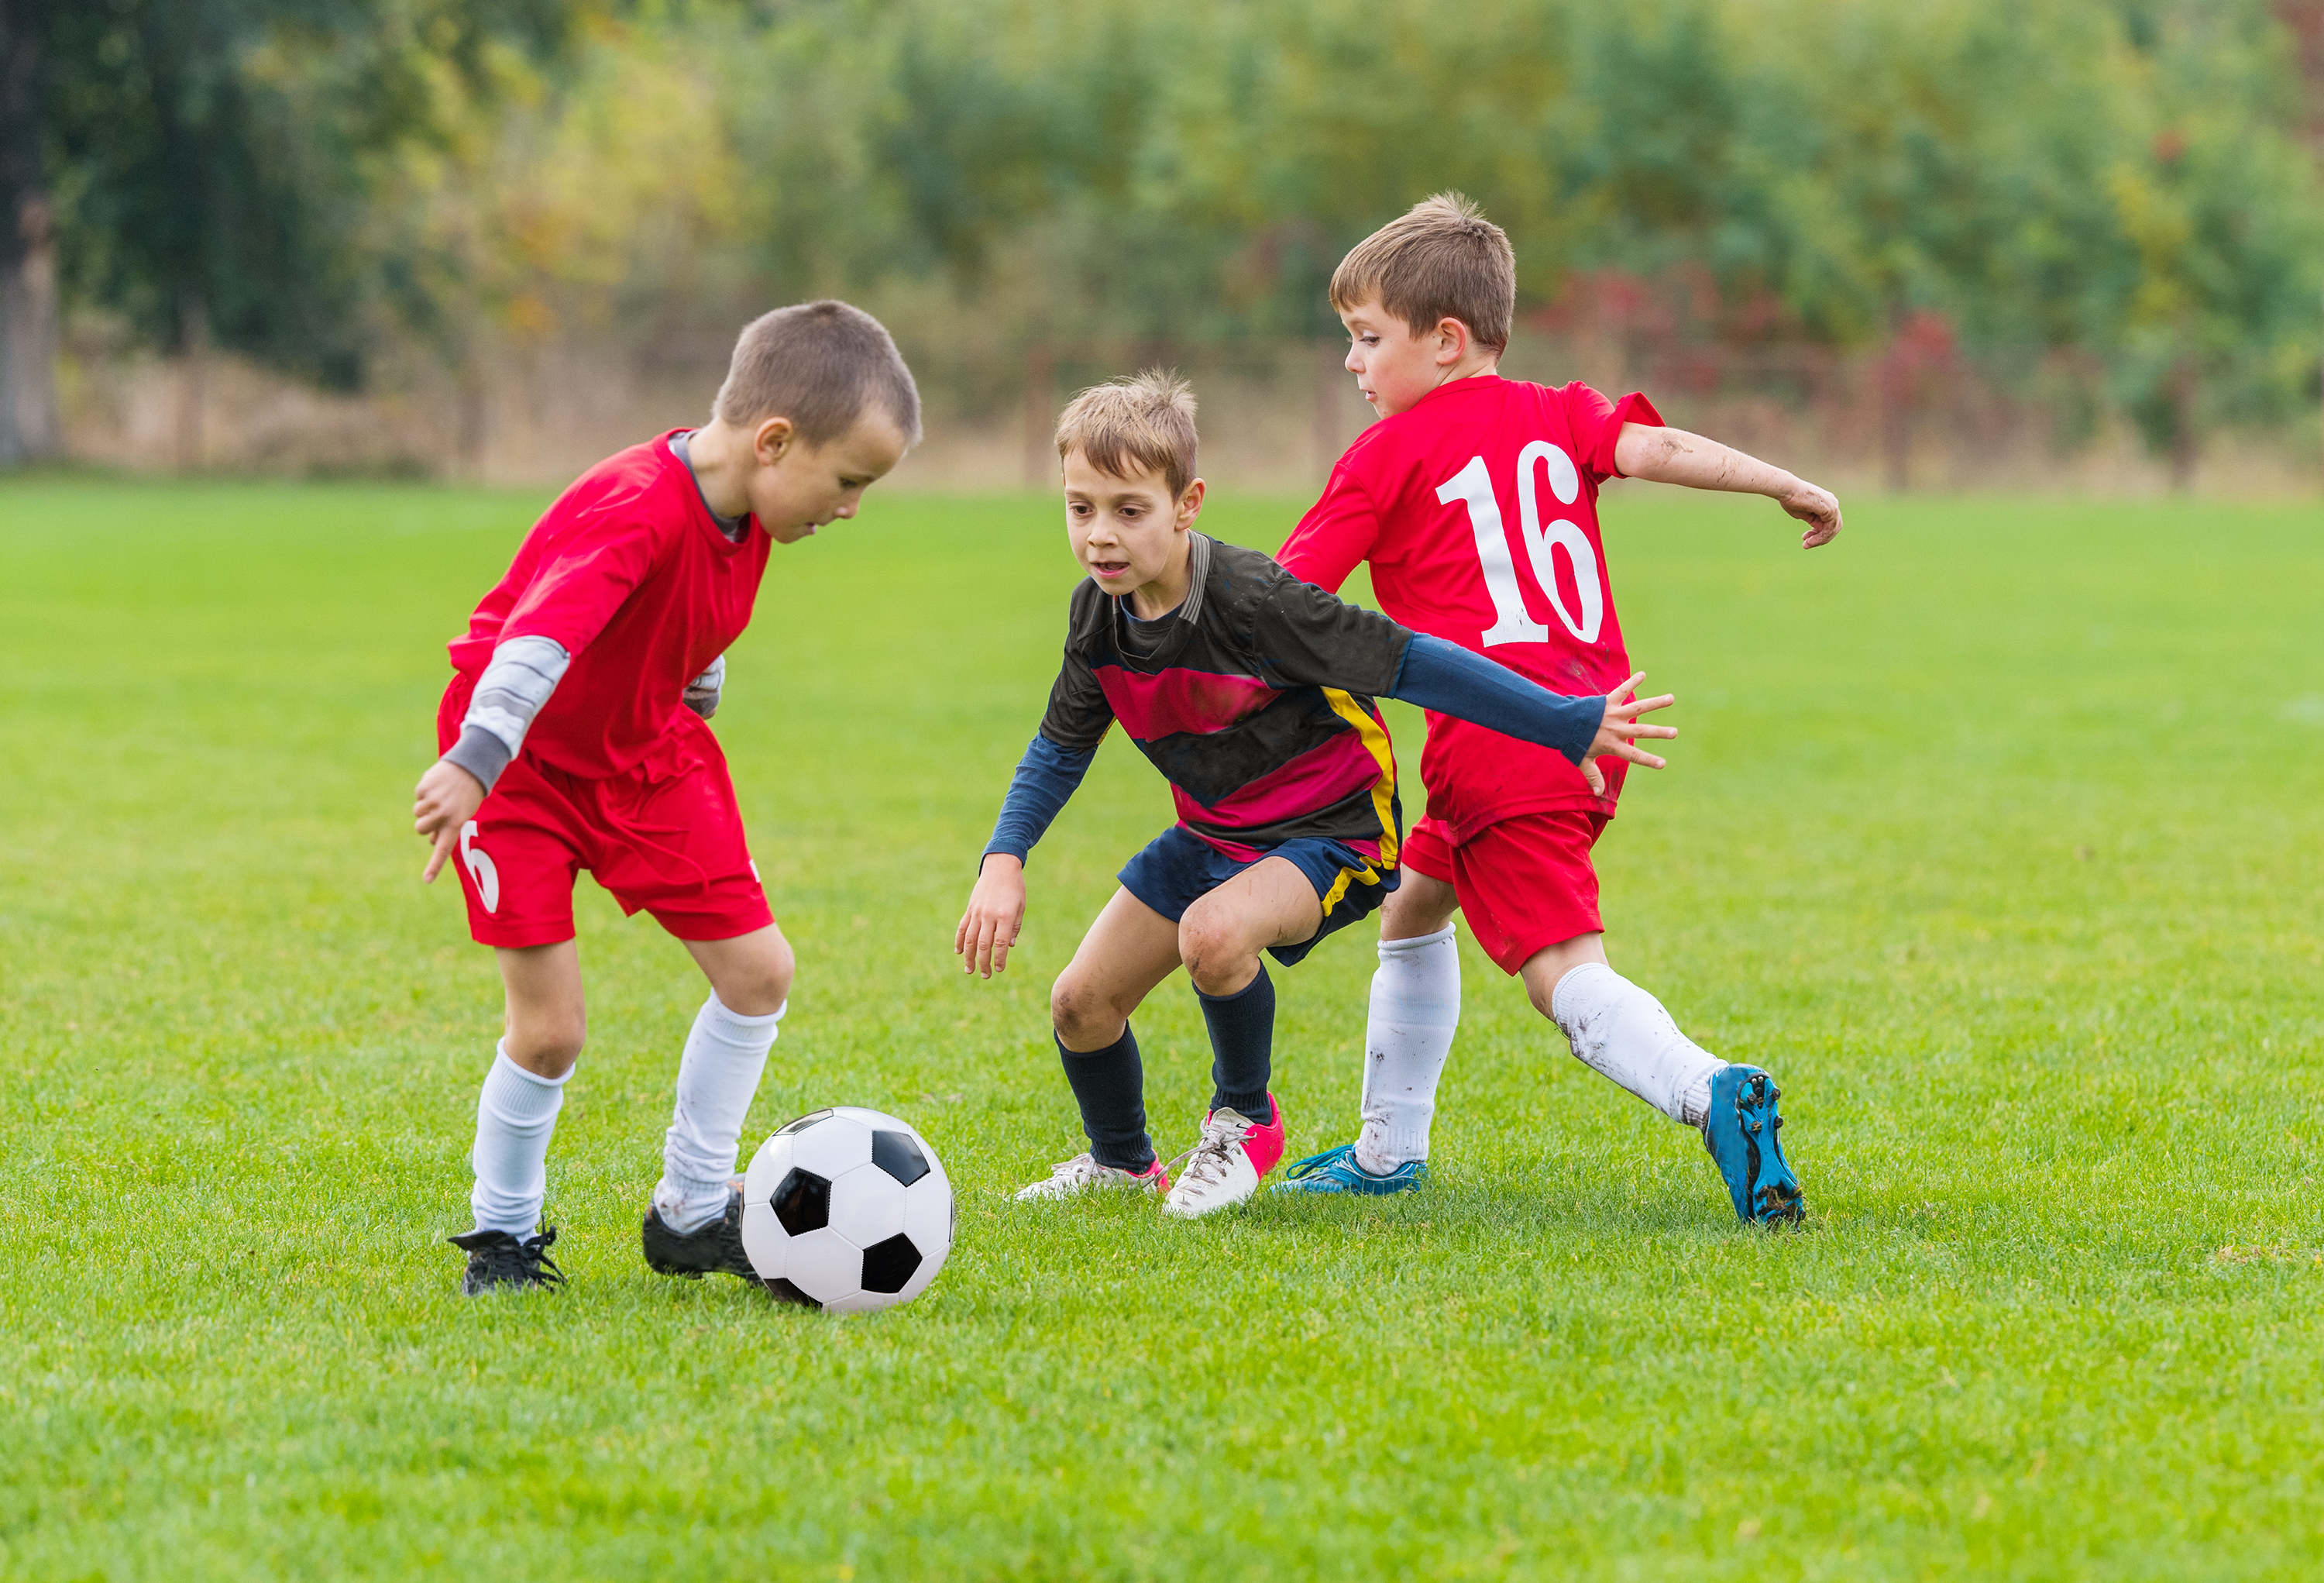 Boys kicking soccer ball on the sports field. (Getty Images)